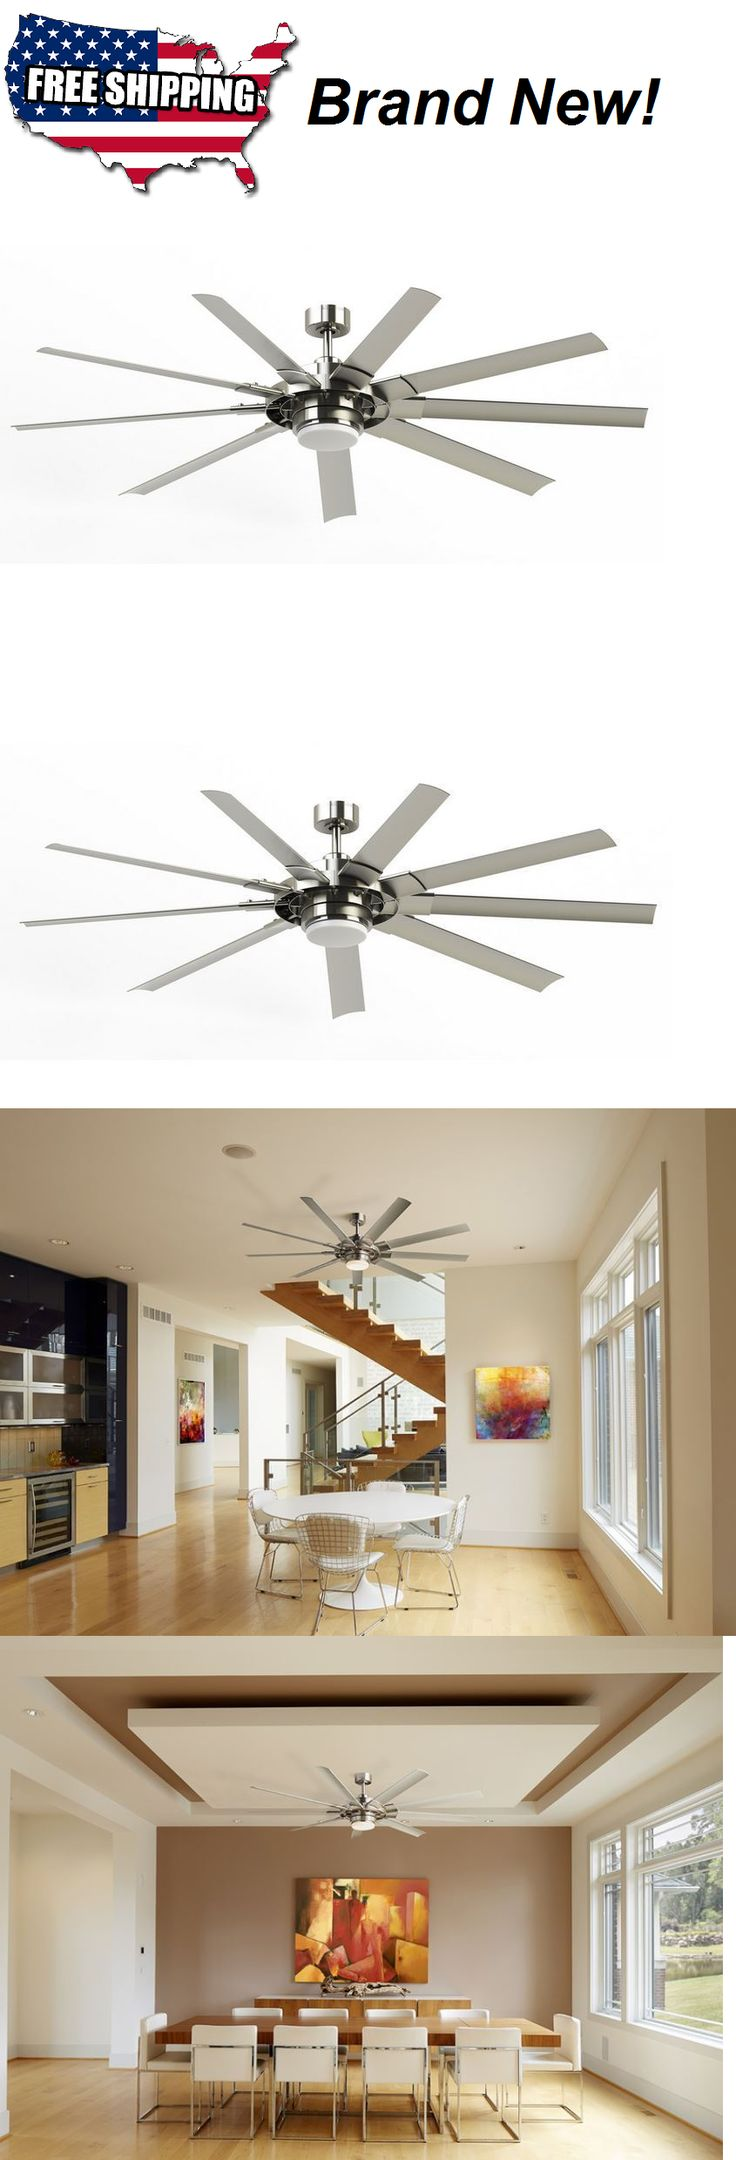 Emerson aira eco 72 inch oil rubbed bronze modern ceiling fan free - Ceiling Fans 176937 72 Brushed Nickel Downrod Mount Indoor Outdoor Ceiling Fan Led Light And